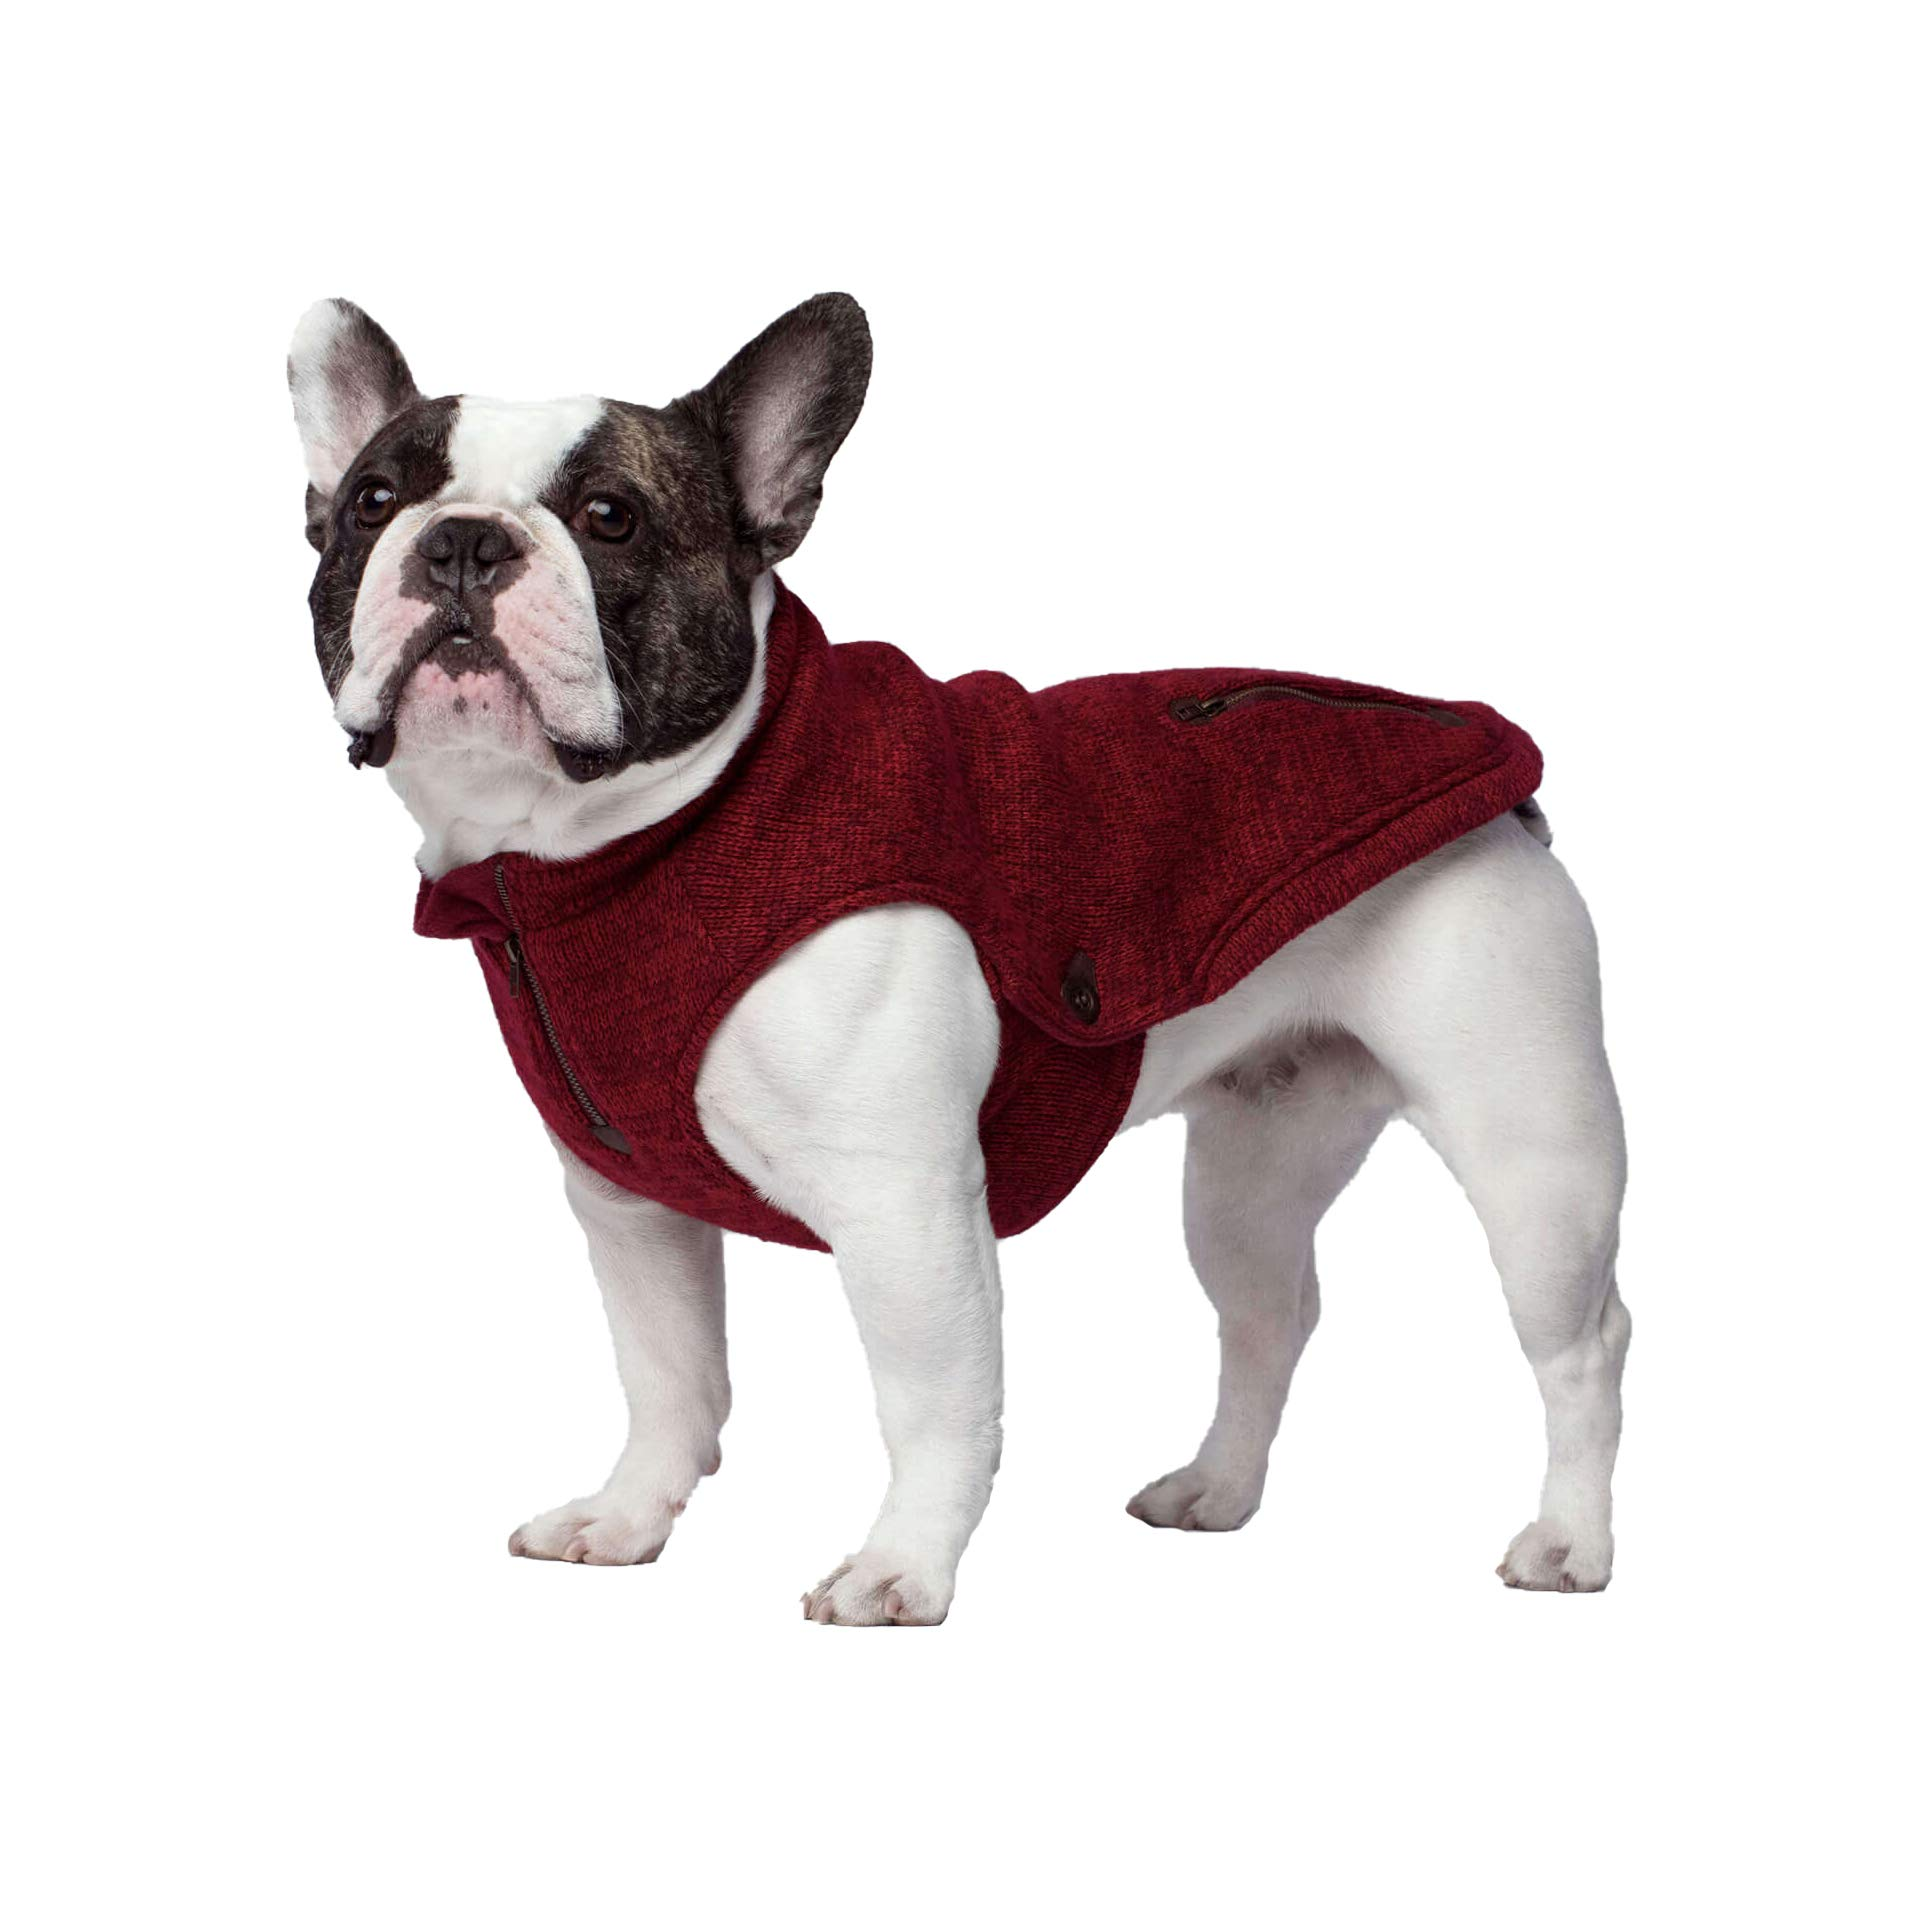 Canada Pooch Northern Knit Fleece-Lined Dog Sweater, Maroon, Size 14